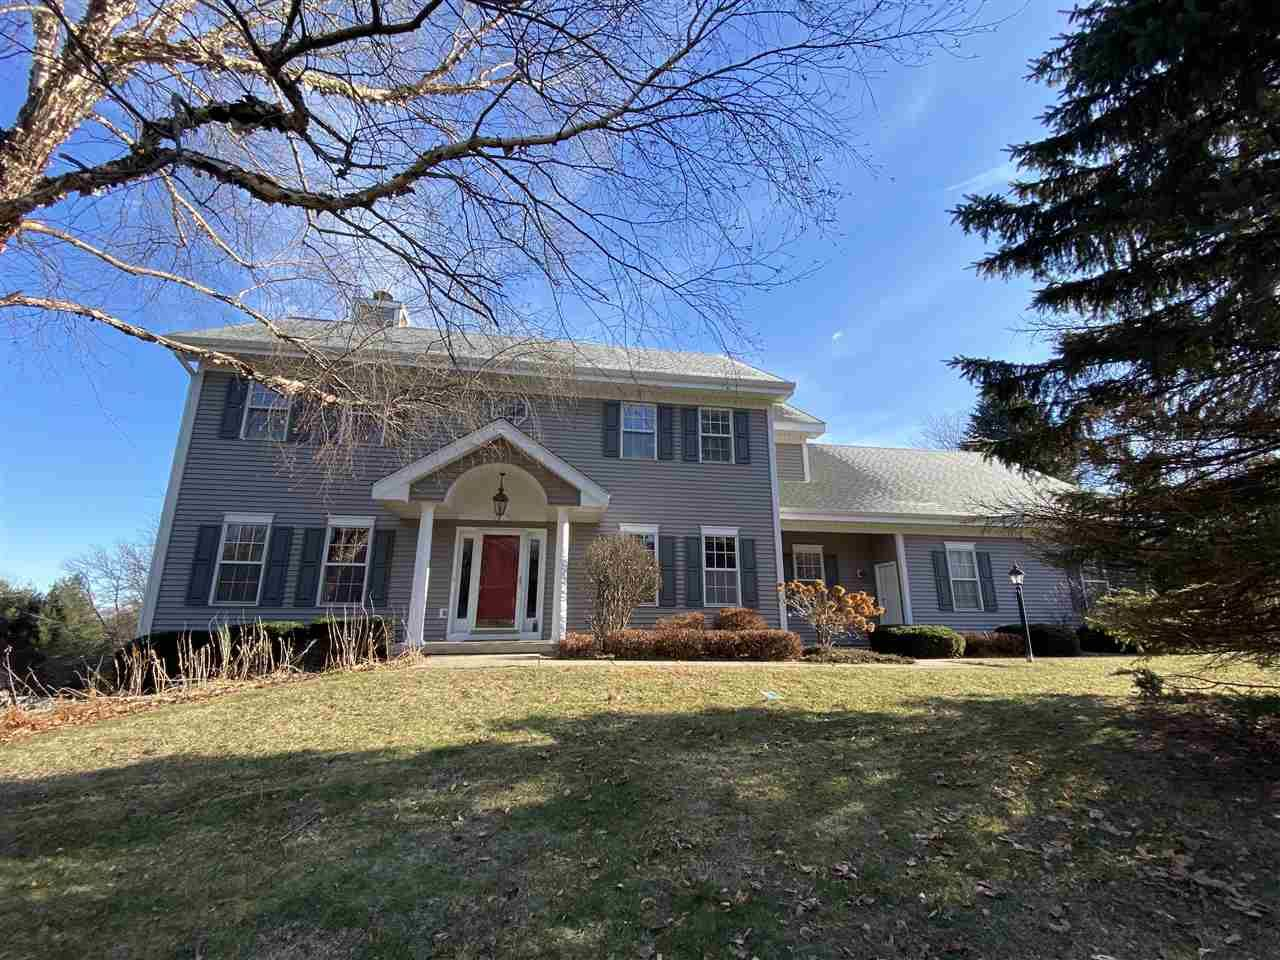 5831 Tree Line Dr, Fitchburg, WI 53711 - #: 1873723